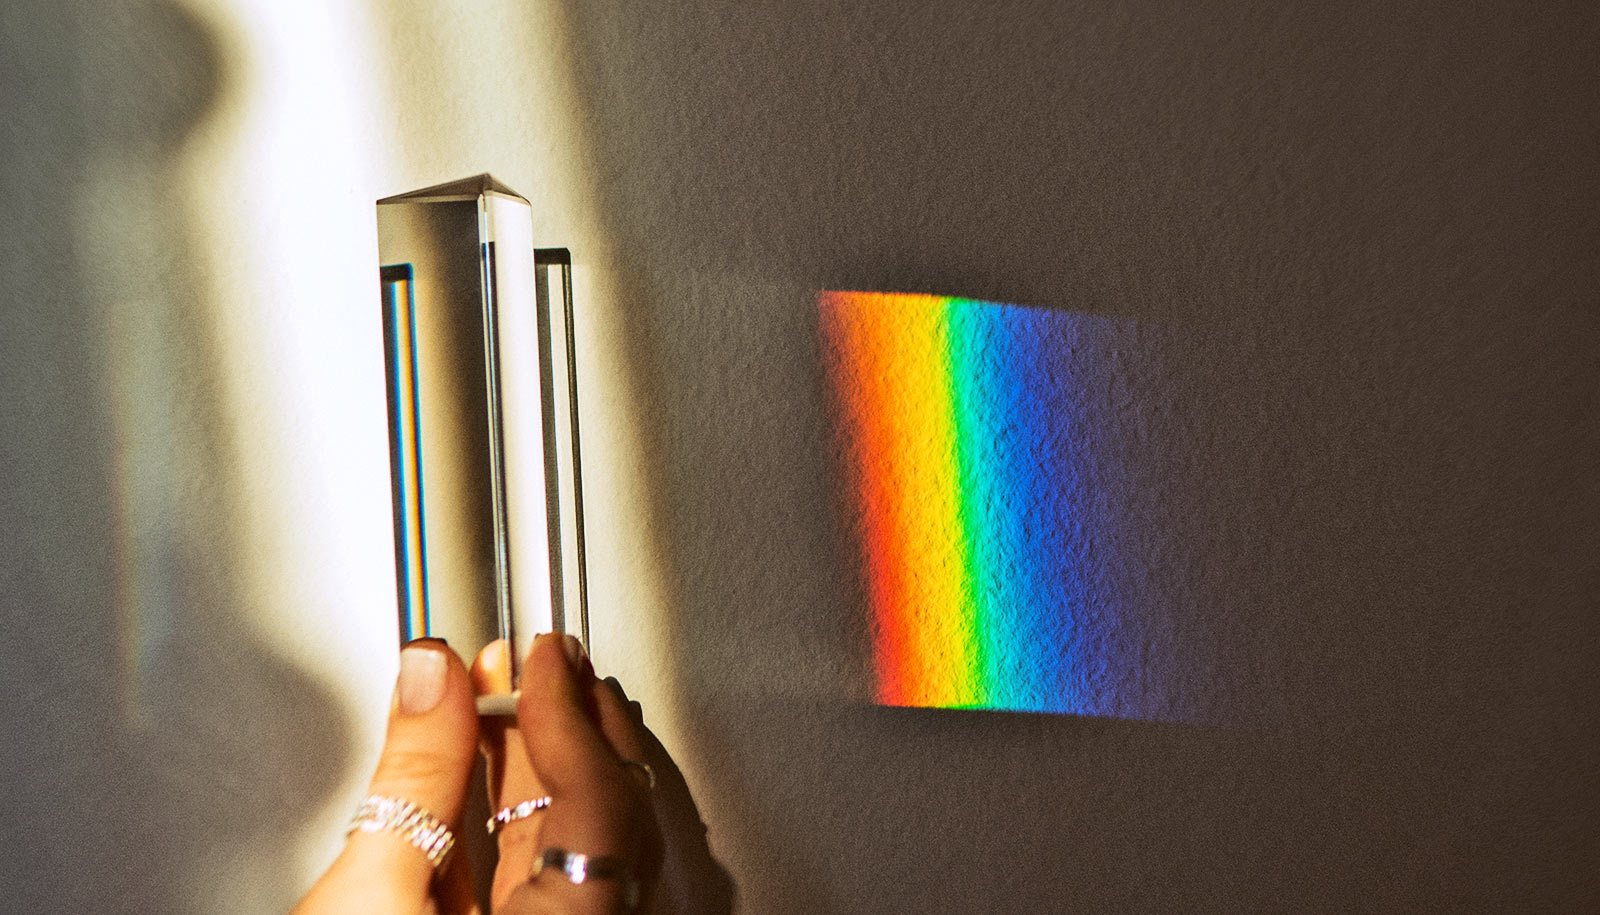 light radiation device bends tiny create futurity prism refracting bending